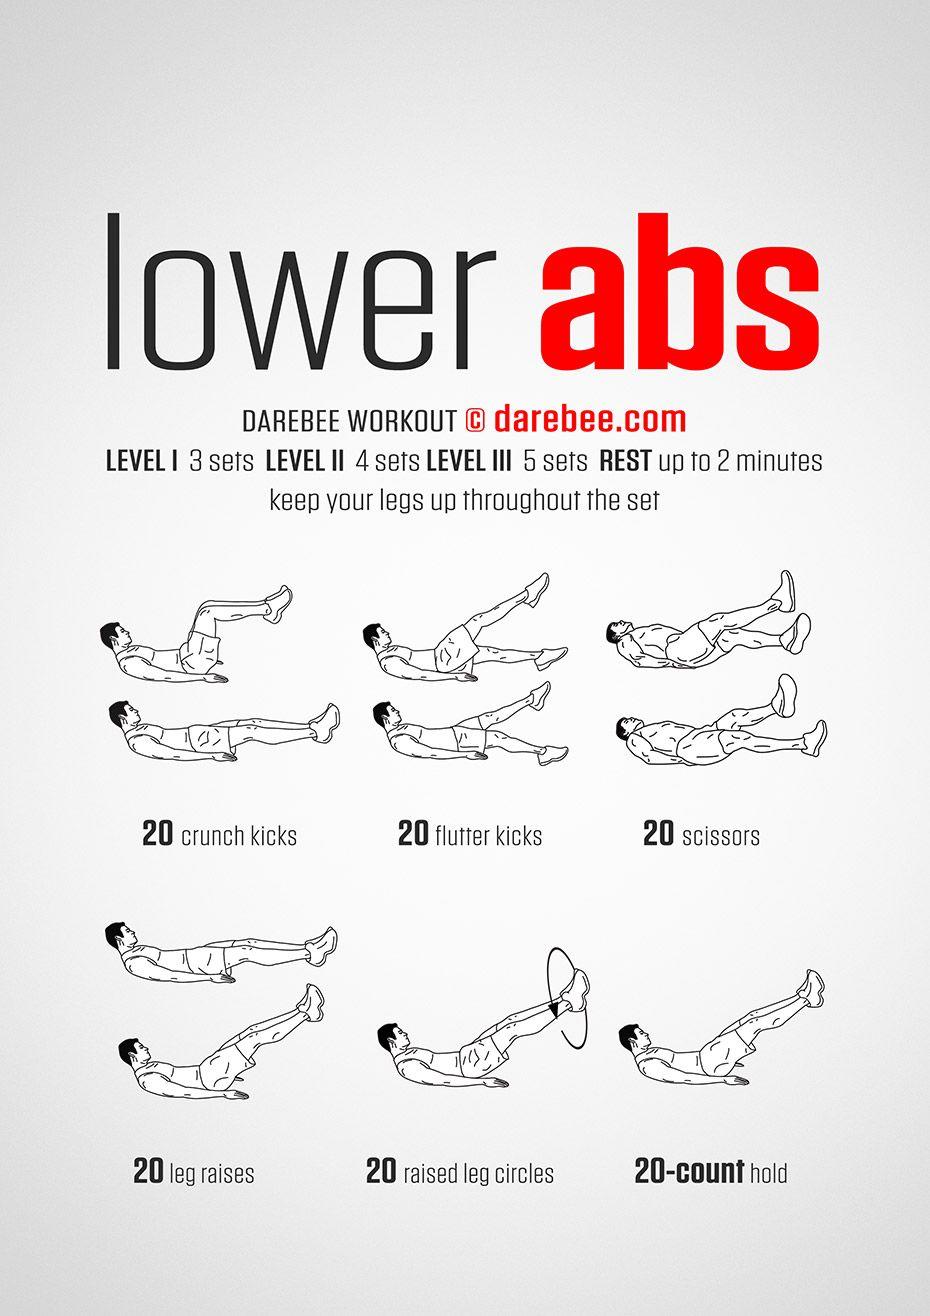 NEW Lower Abs Workout darebee workout fitness abs  Sports